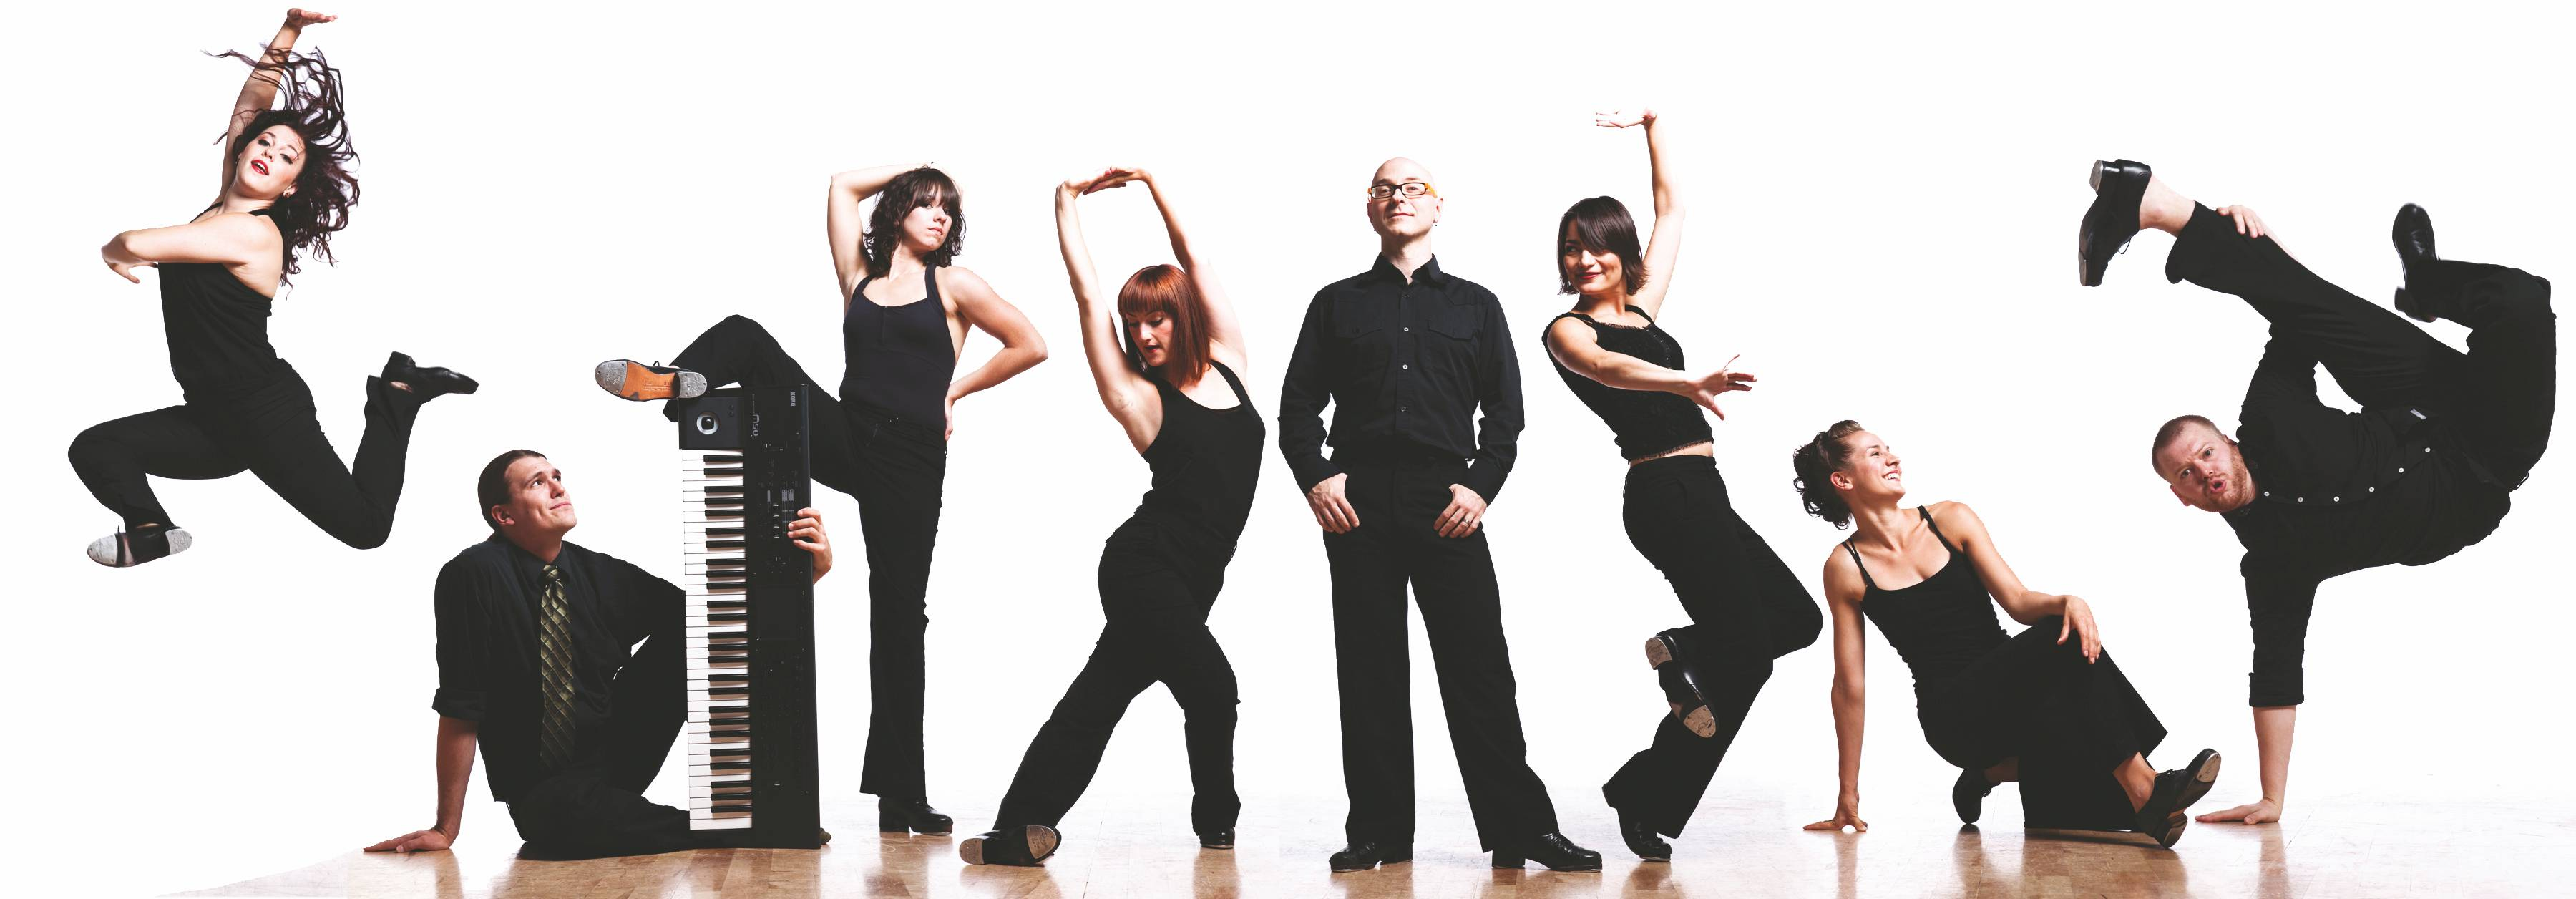 Chicago Tap Theatre tells original stories using diverse music, from Chet Baker to David Bowie. The troupe performs at College of Lake County's Lumber Center for the Performing Arts in Grayslake at 7:30 p.m. Friday, April 18.